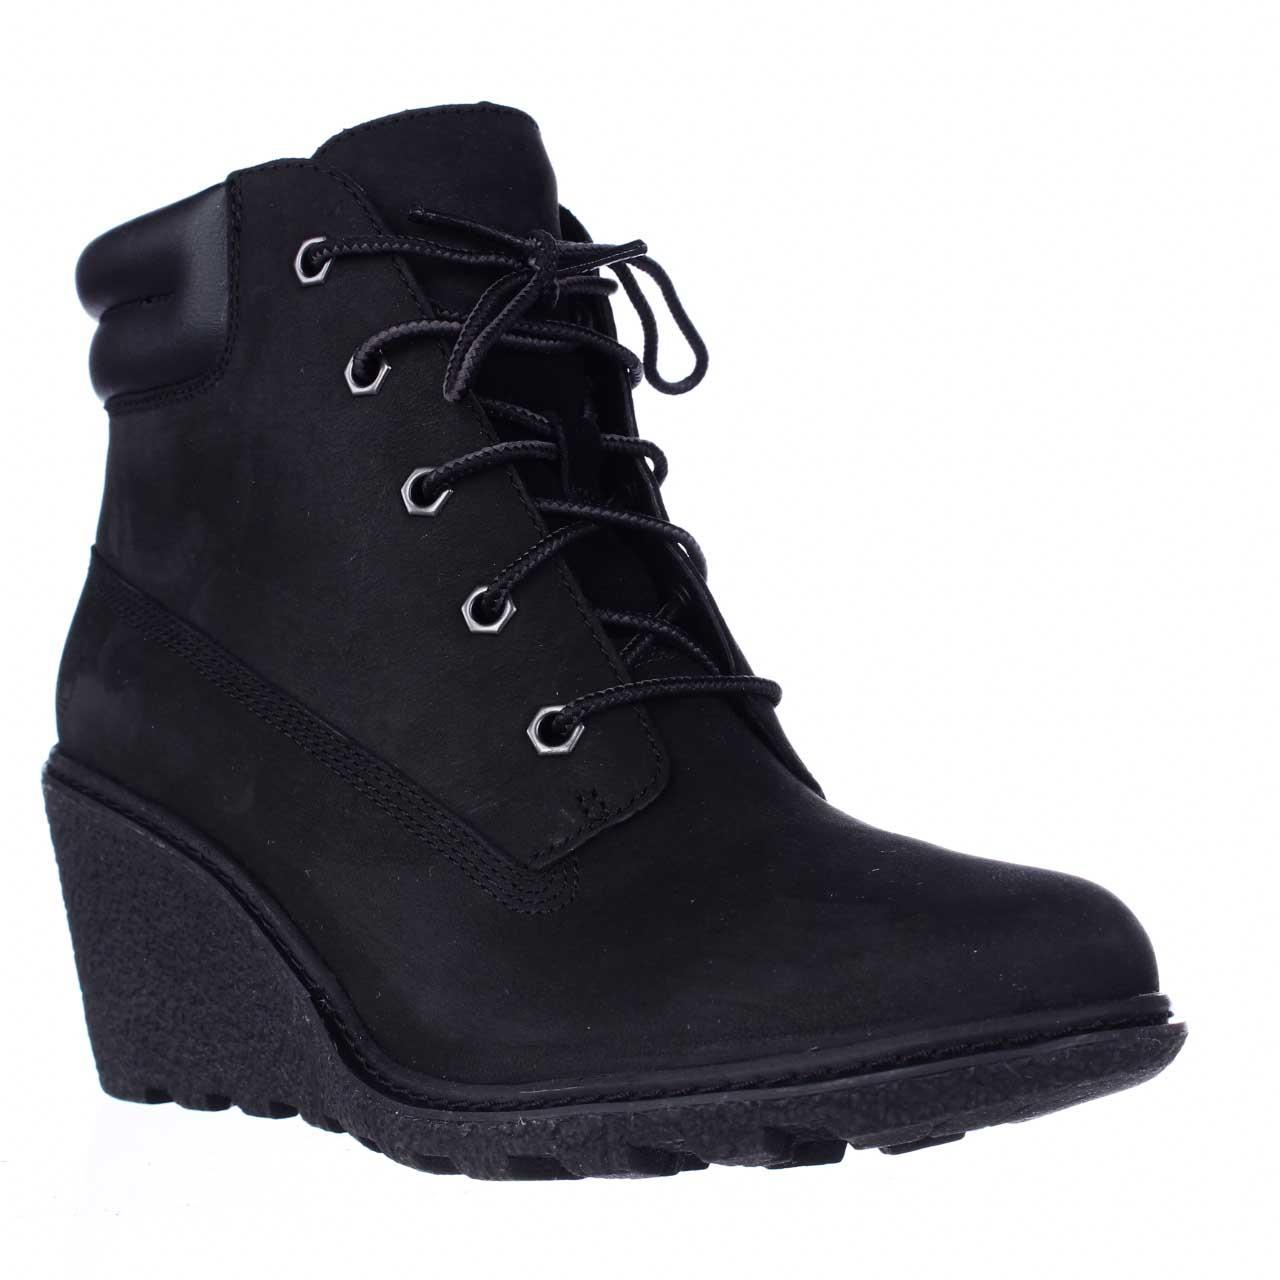 Womens Timberland Earthkeepers Amston Wedge Ankle Boots Black by Timberland